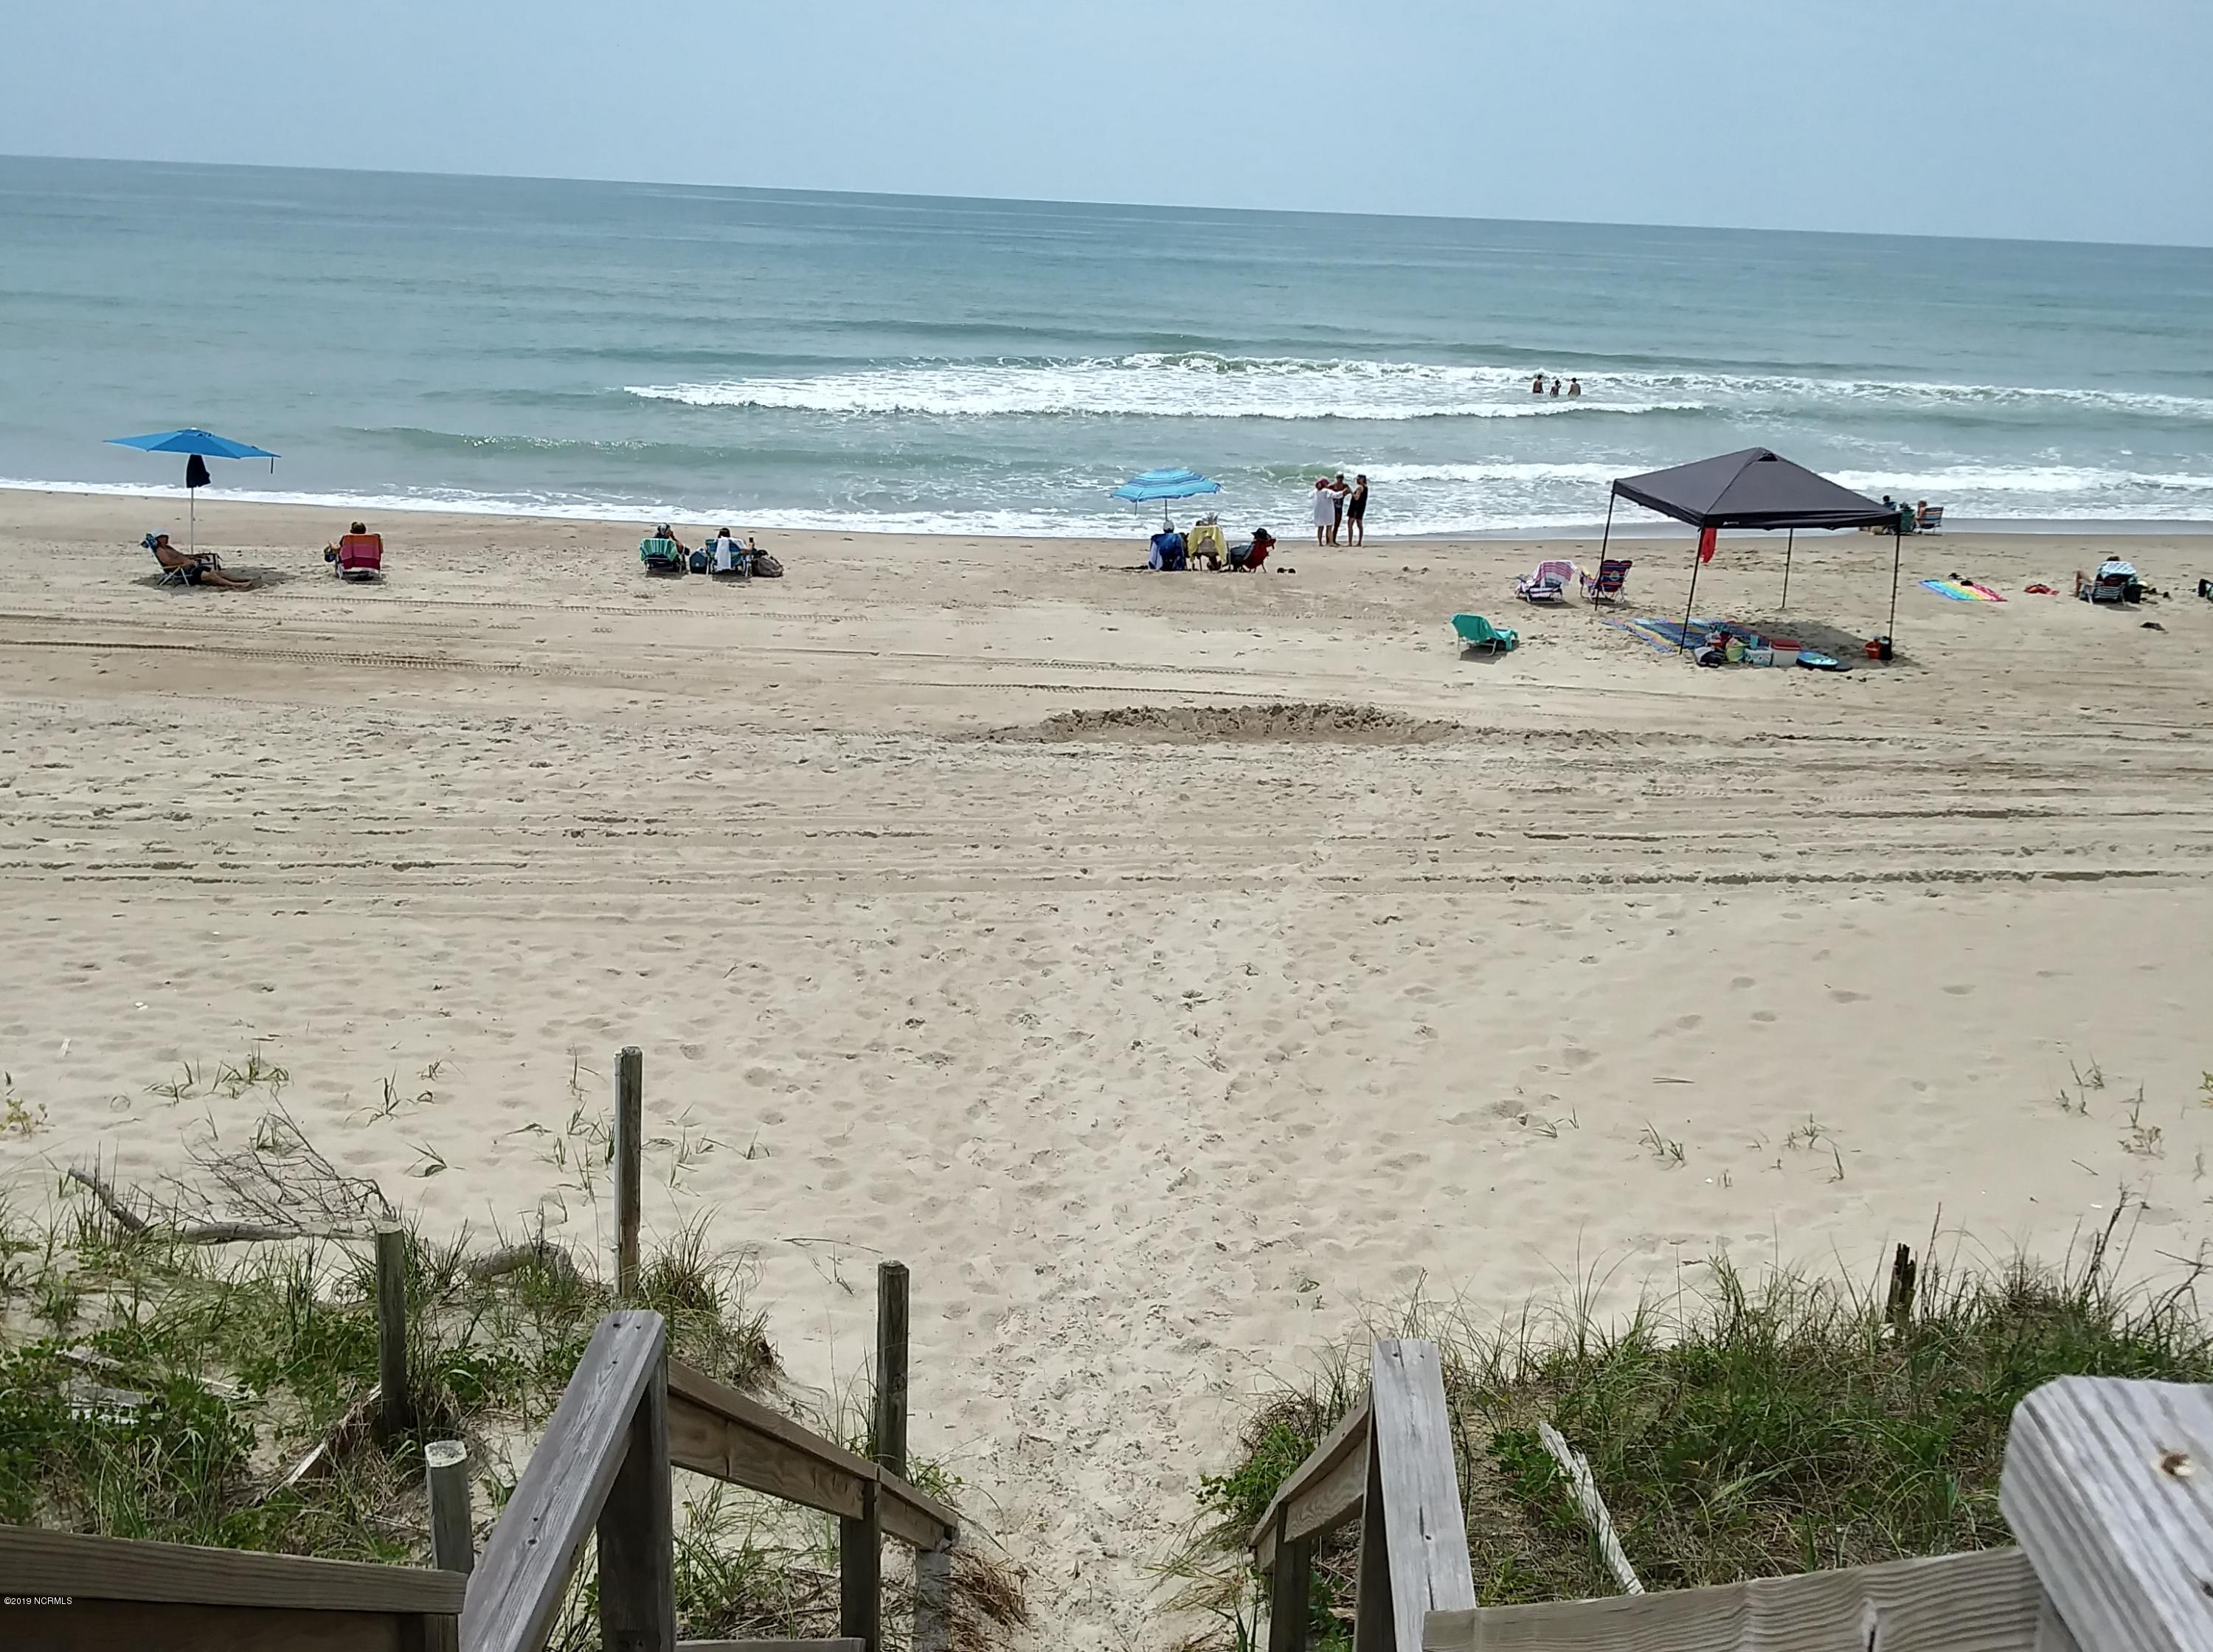 7401 Ocean Drive, Emerald Isle, North Carolina 28594, 5 Bedrooms Bedrooms, 10 Rooms Rooms,4 BathroomsBathrooms,Single family residence,For sale,Ocean,100176467